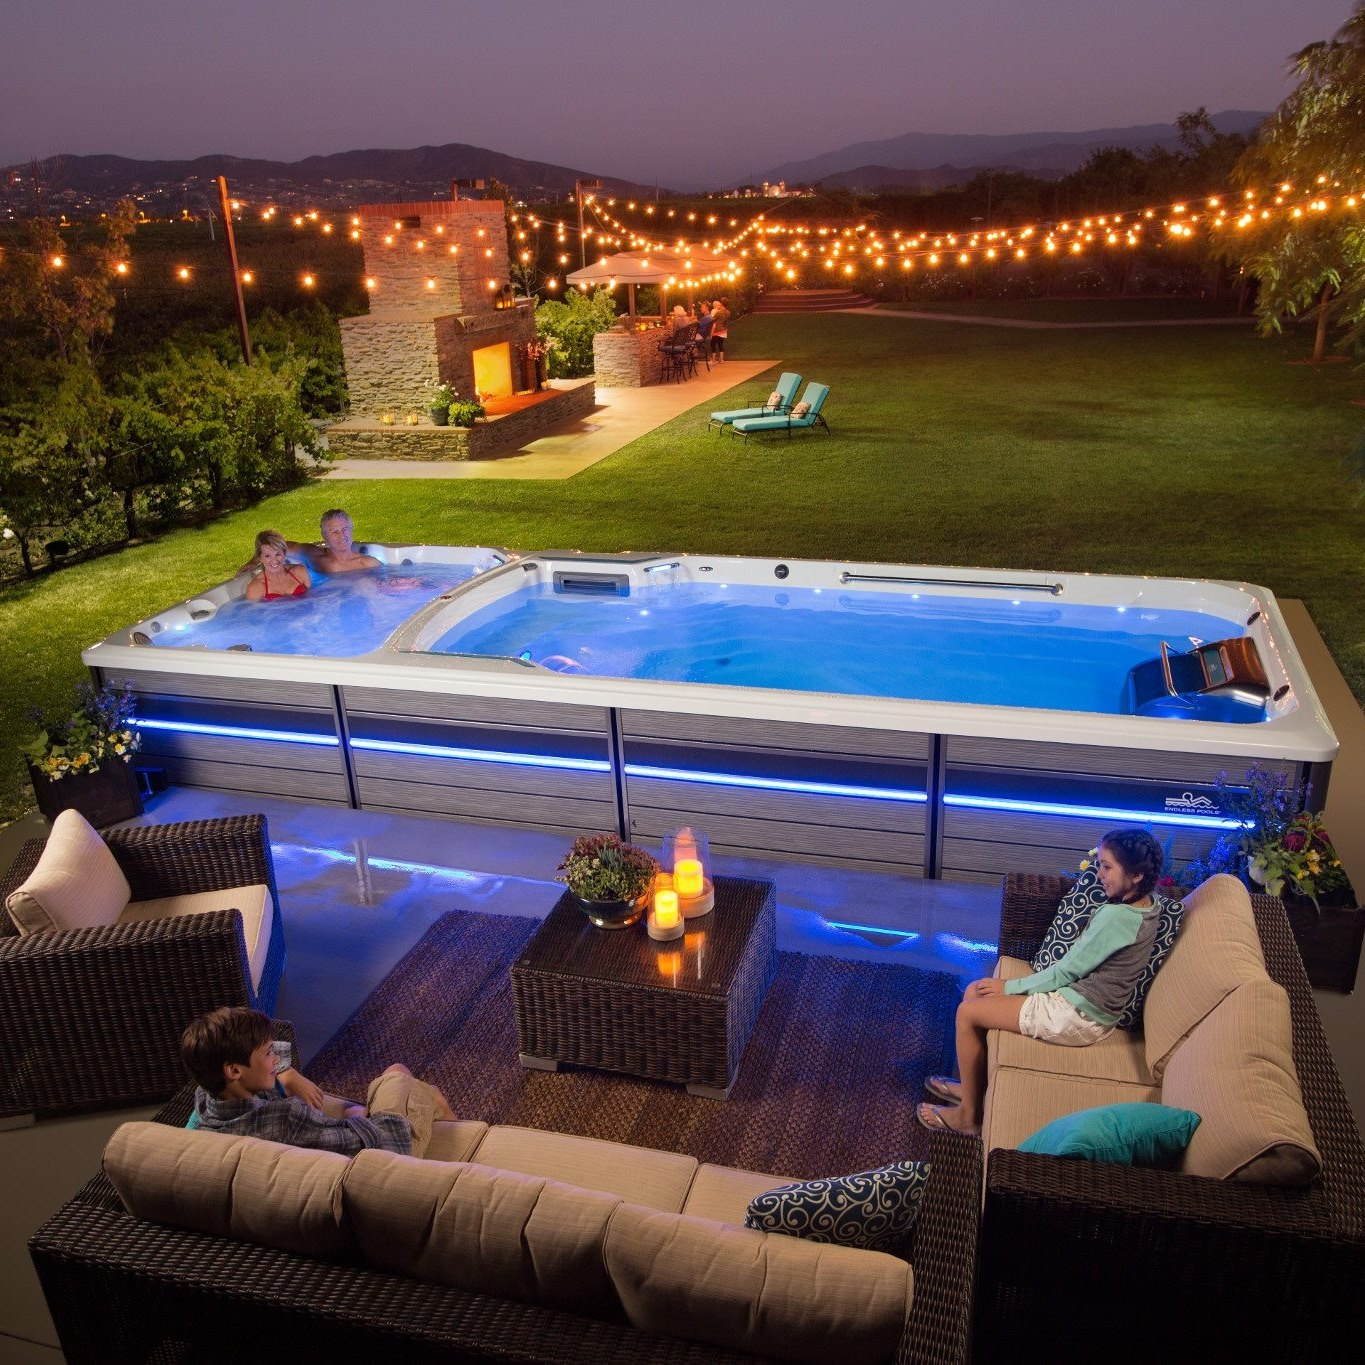 Endless pool fitness system swim spa with hot tub spa in Texas